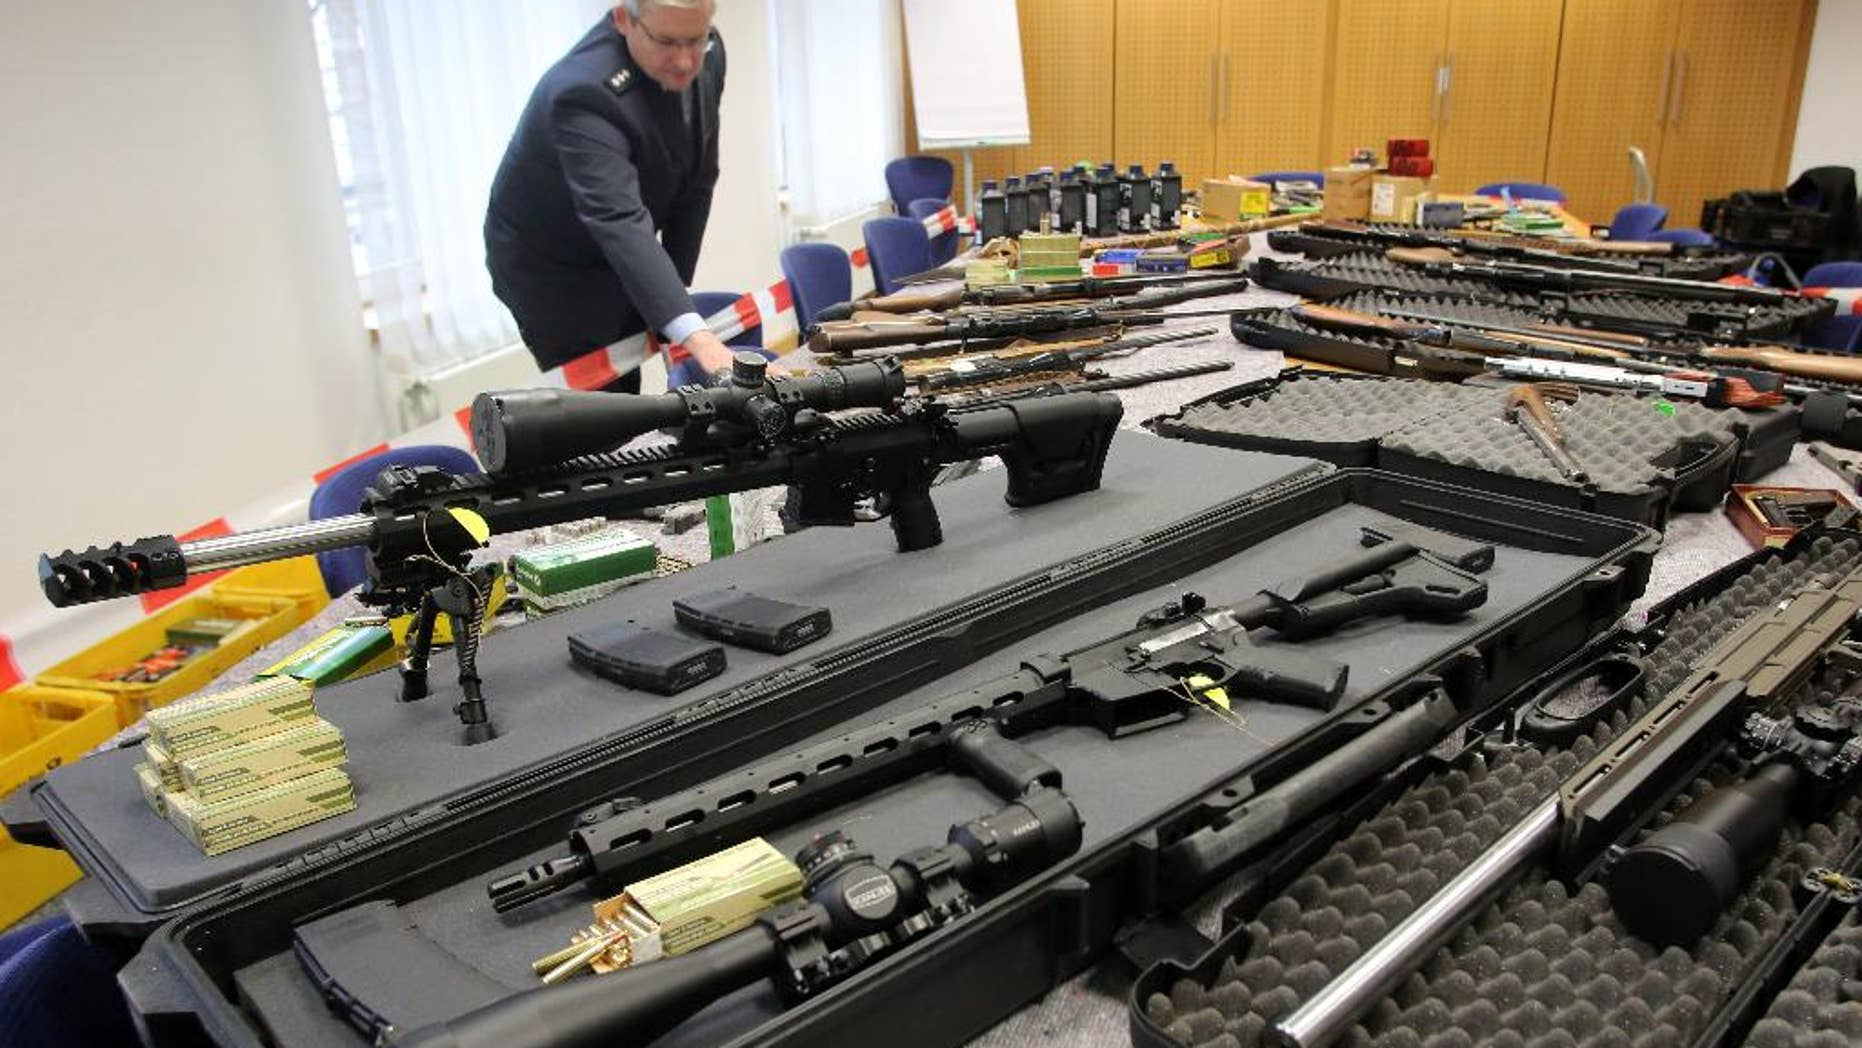 Police display weapons seized already on Nov. 9,  2016  in Solingen , Germany from the radical rightwing 'Reichsbuerger' group, in Wuppertal, Germany,  Thursday Nov. 17, 2016.  The weapons   had previously been in the possession of two members of the anti-government  organization. (Roland Weihrauch/dpa vis AP)